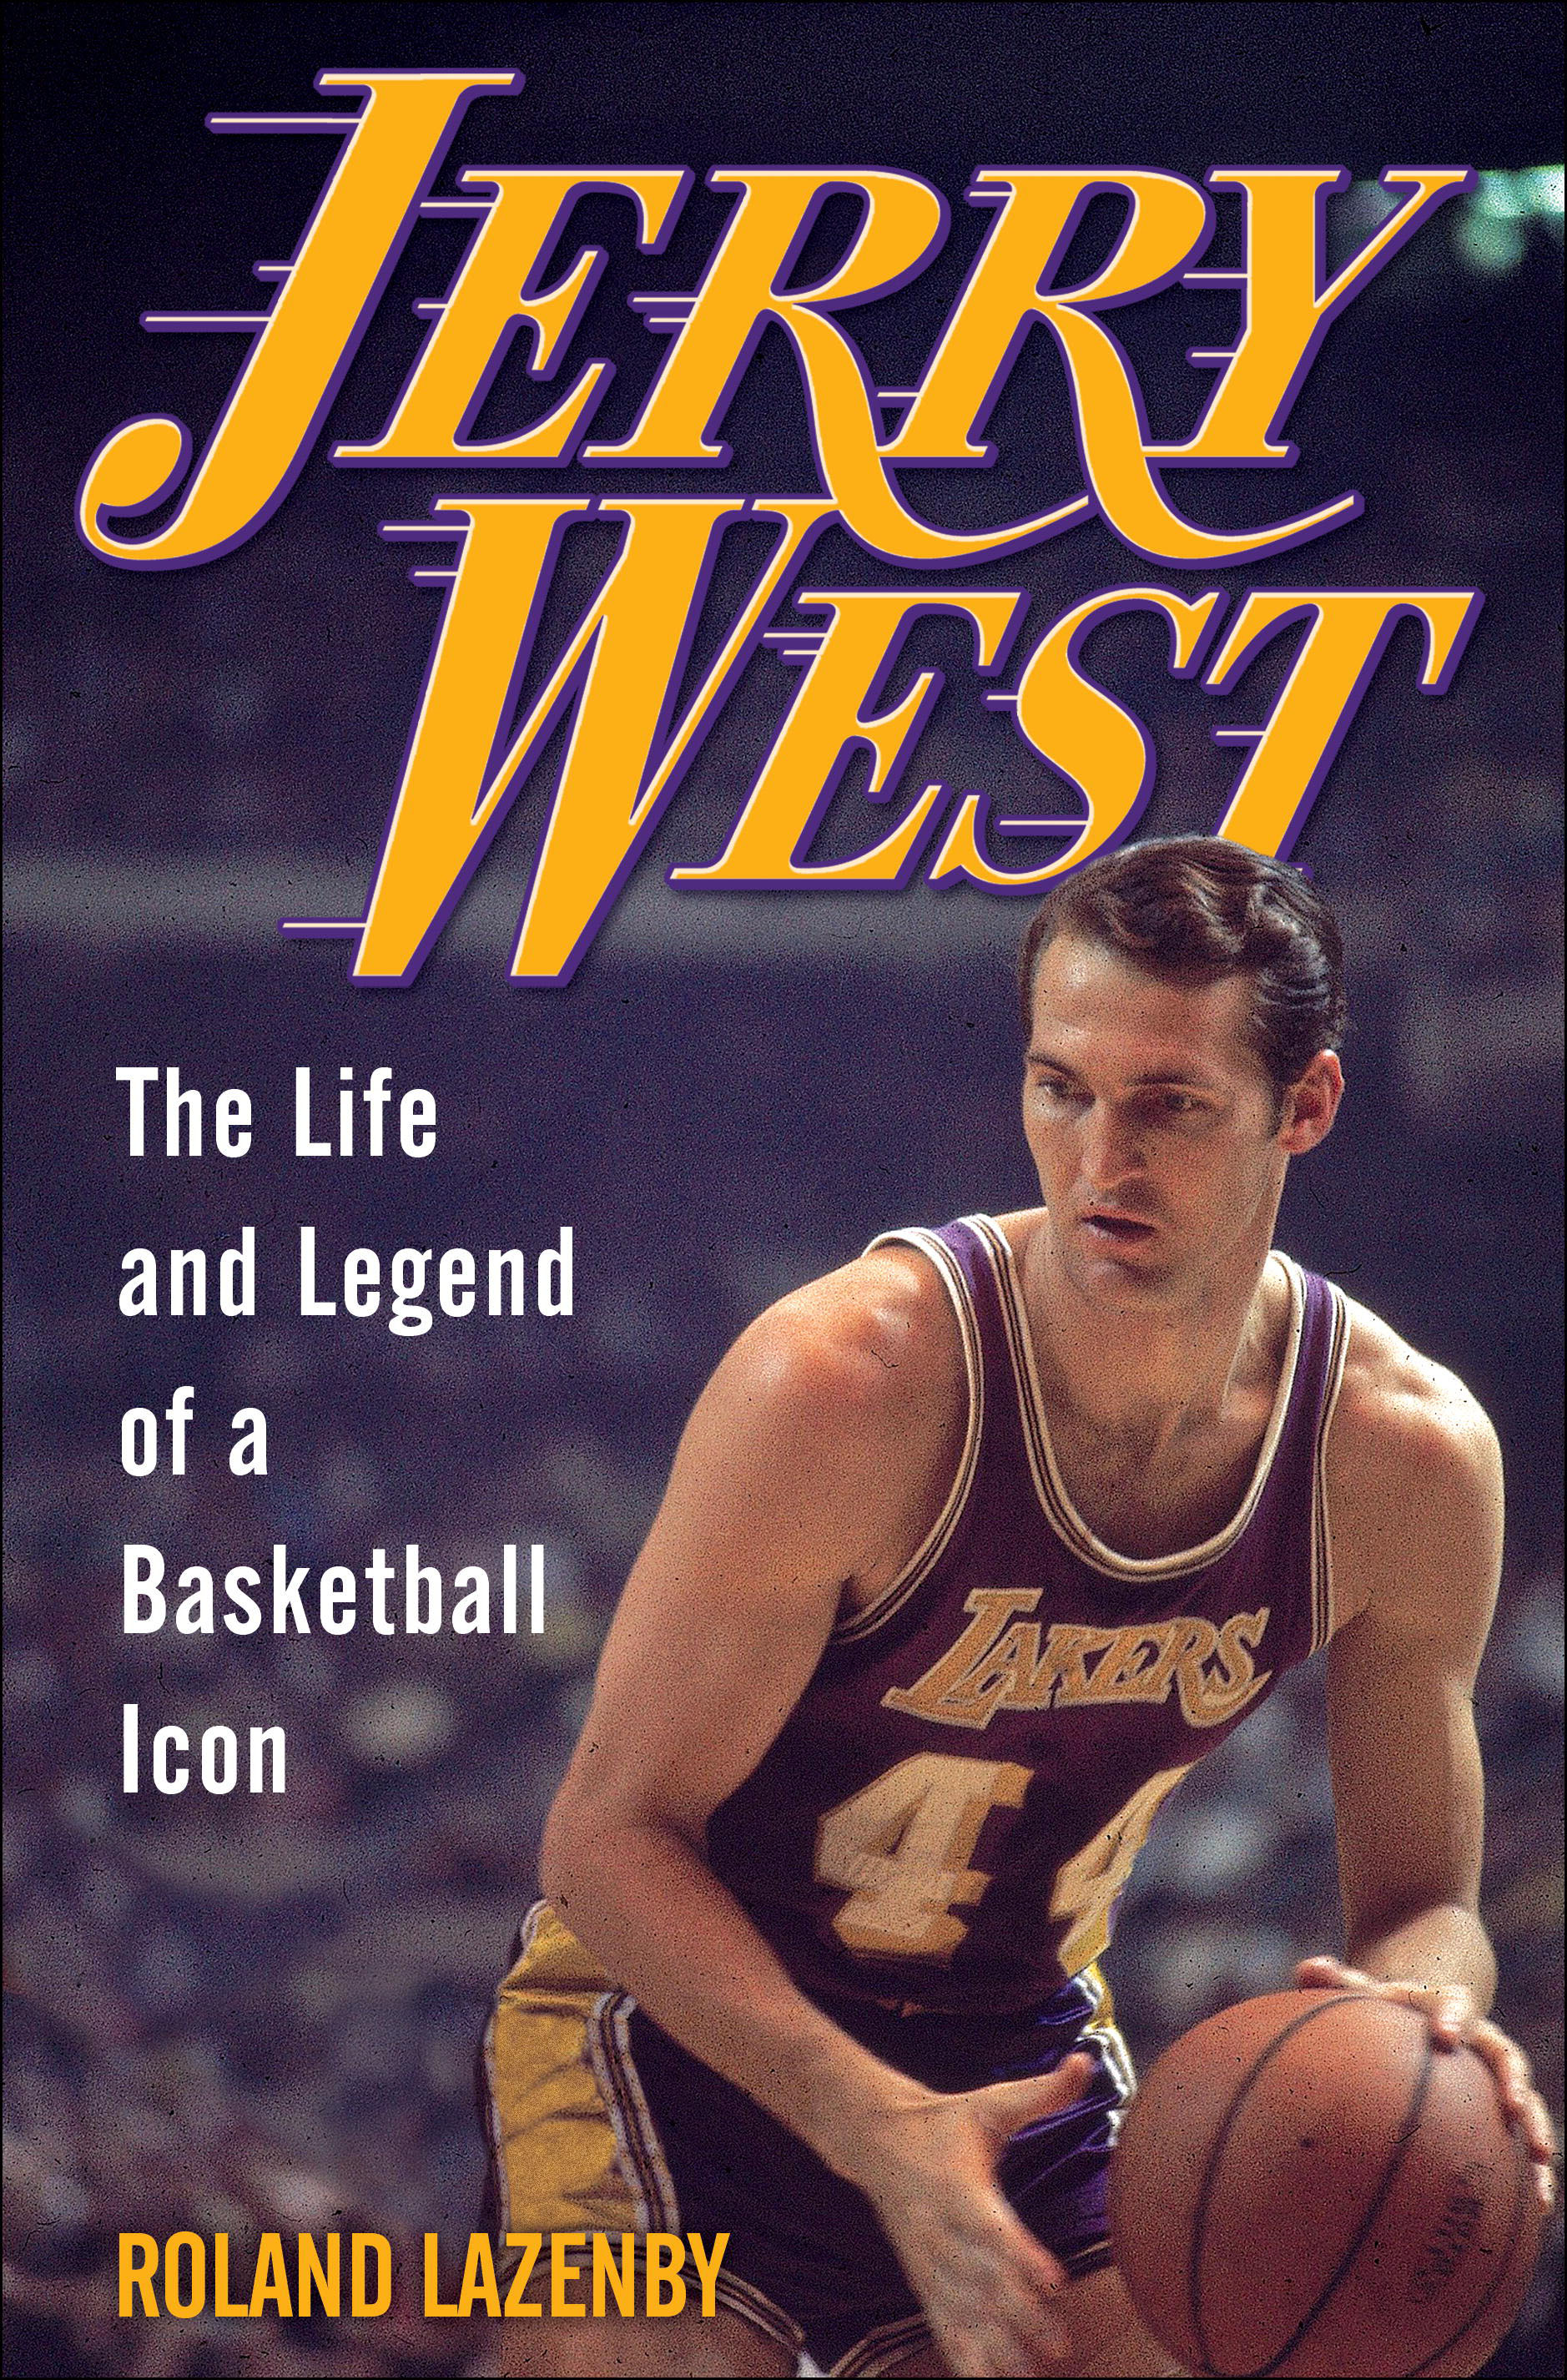 Roland Lazenby publishes acclaimed biography on Jerry West